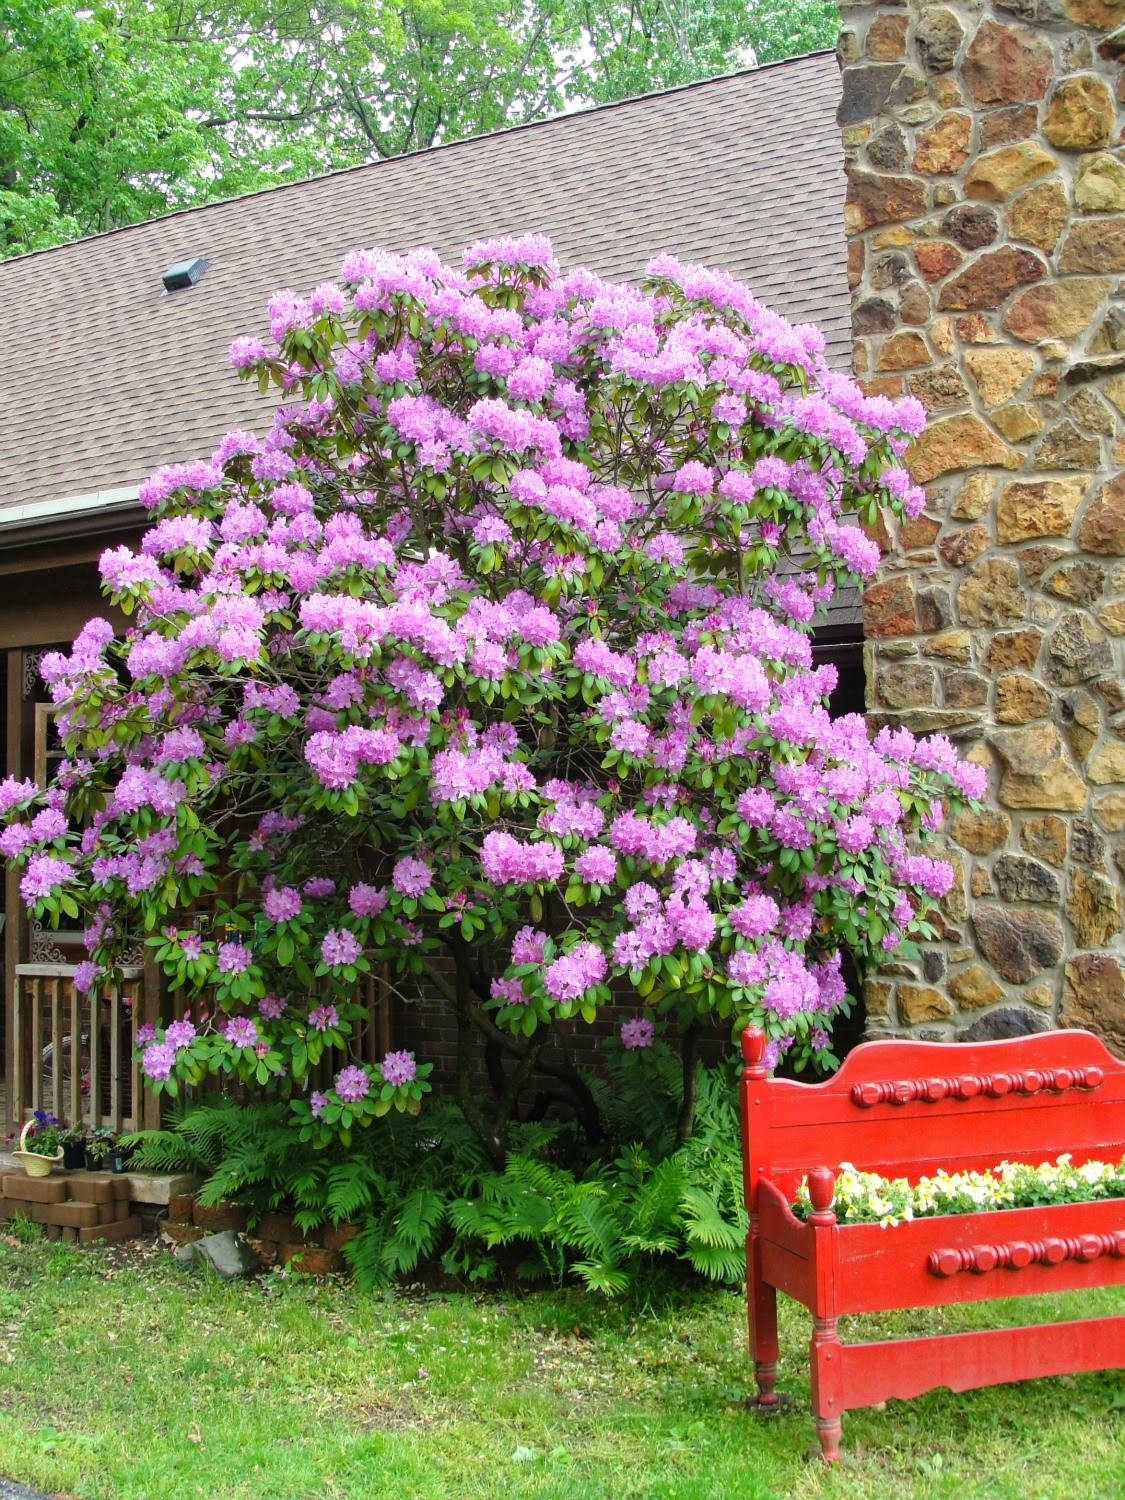 Blooming large Rhododendron